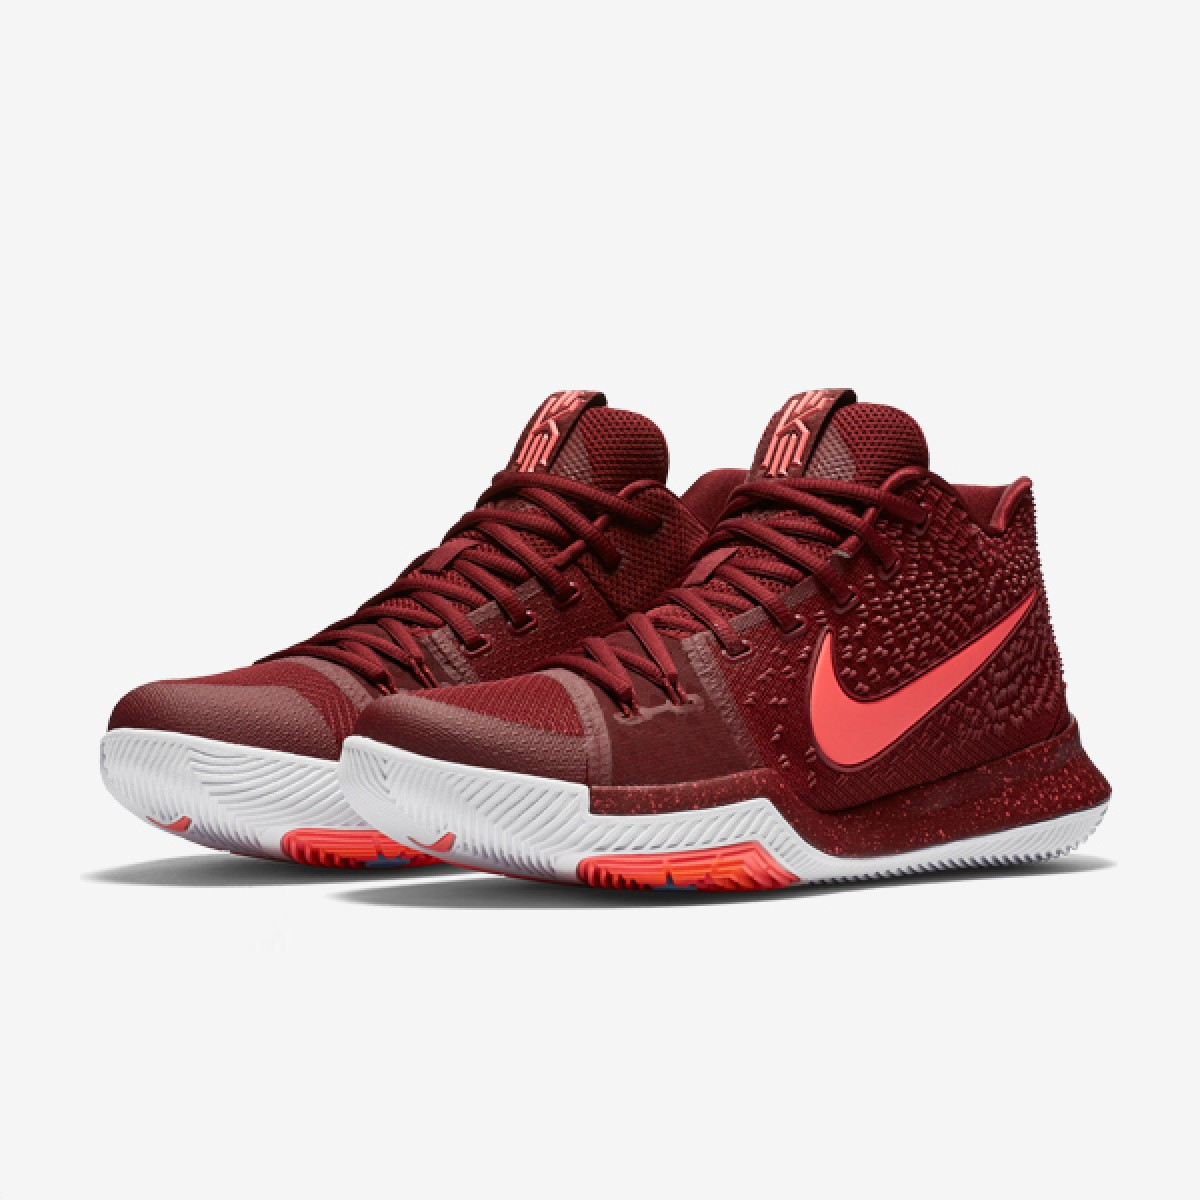 Nike Kyrie 3 GS 'Warning' 859466-681